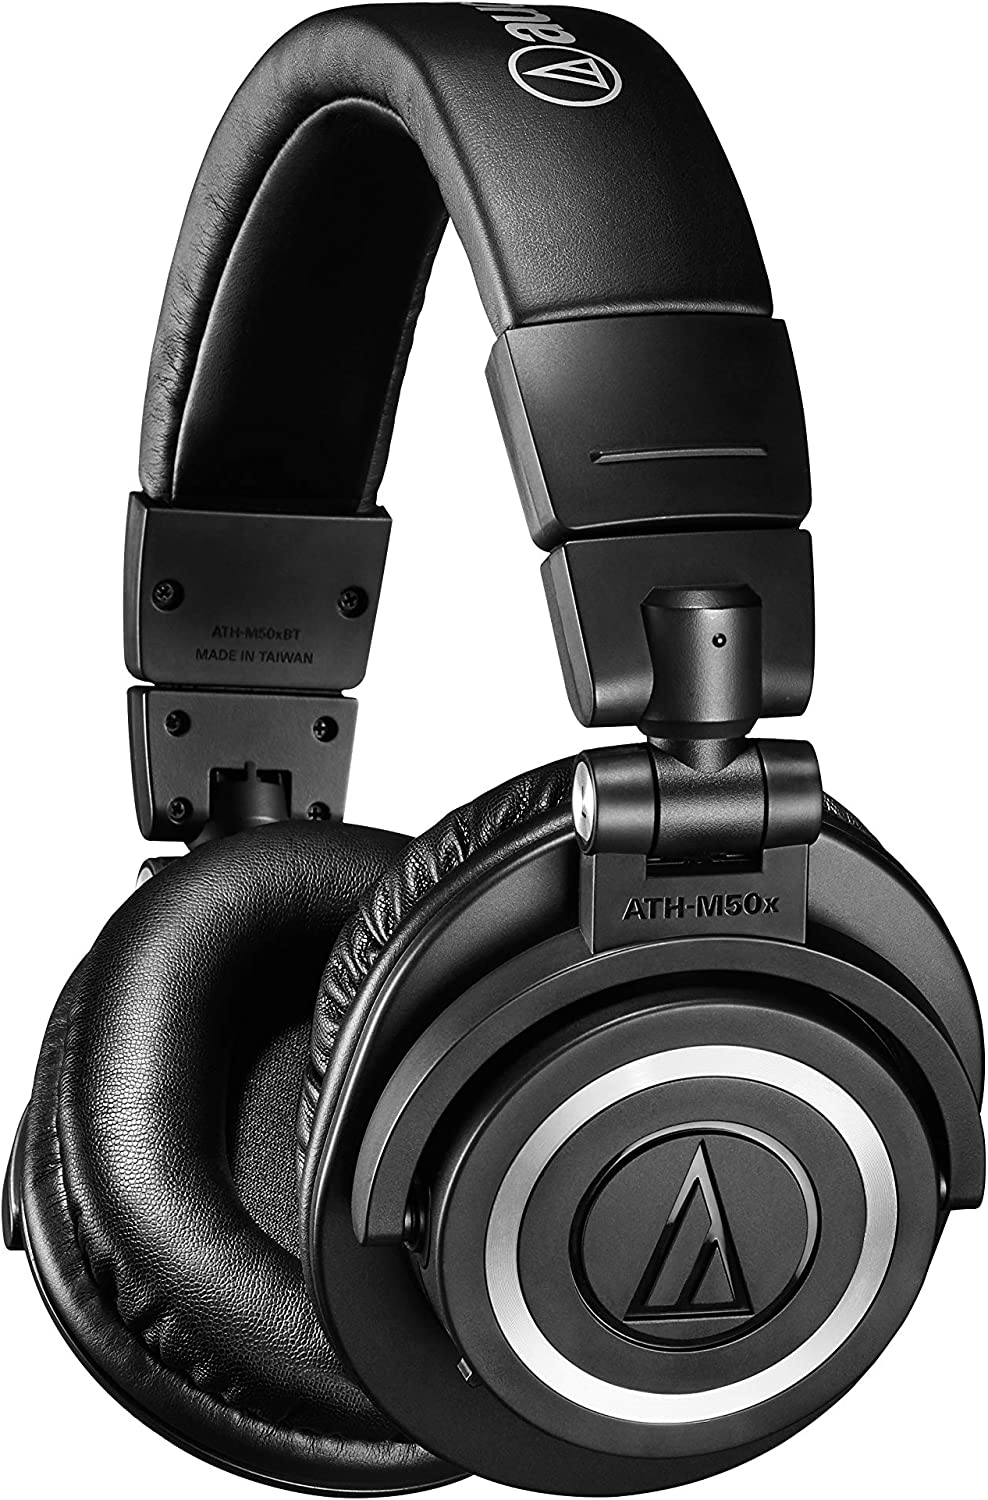 8 Best Headphones For Mixing And Mastering | Ultimate List 5